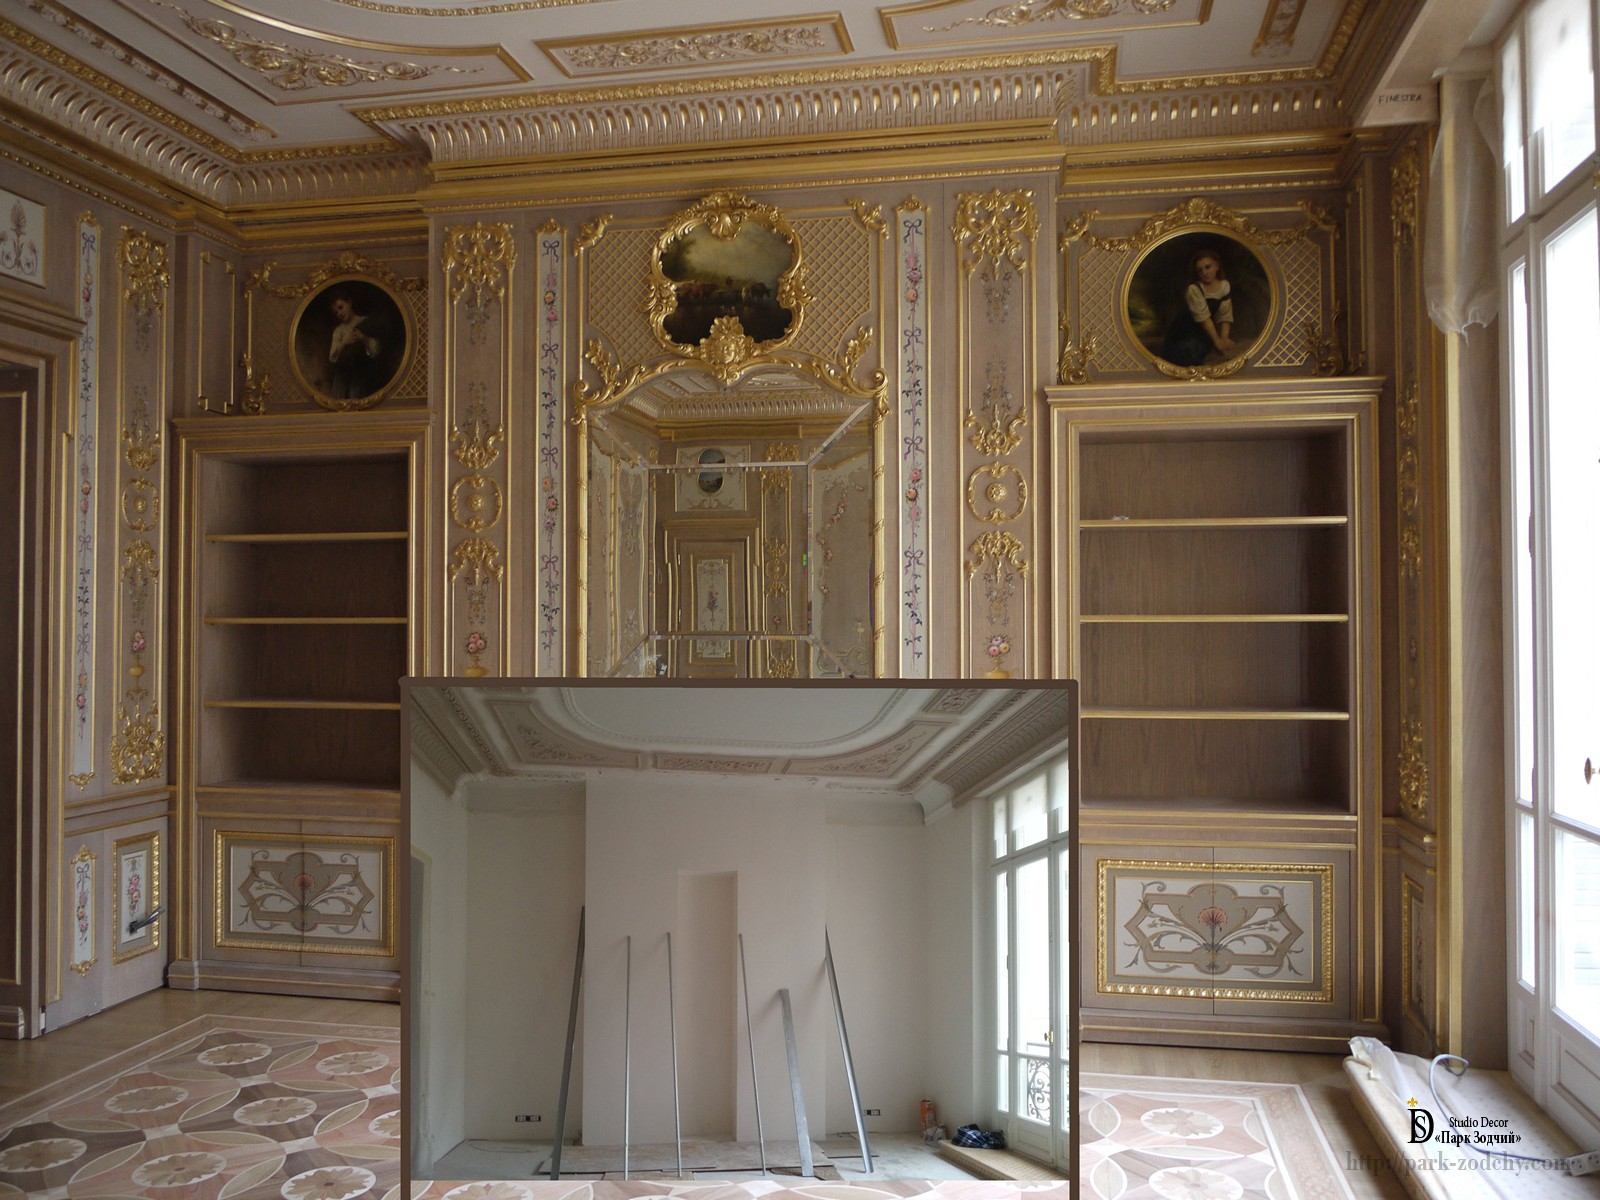 Interior decoration with stucco, painted